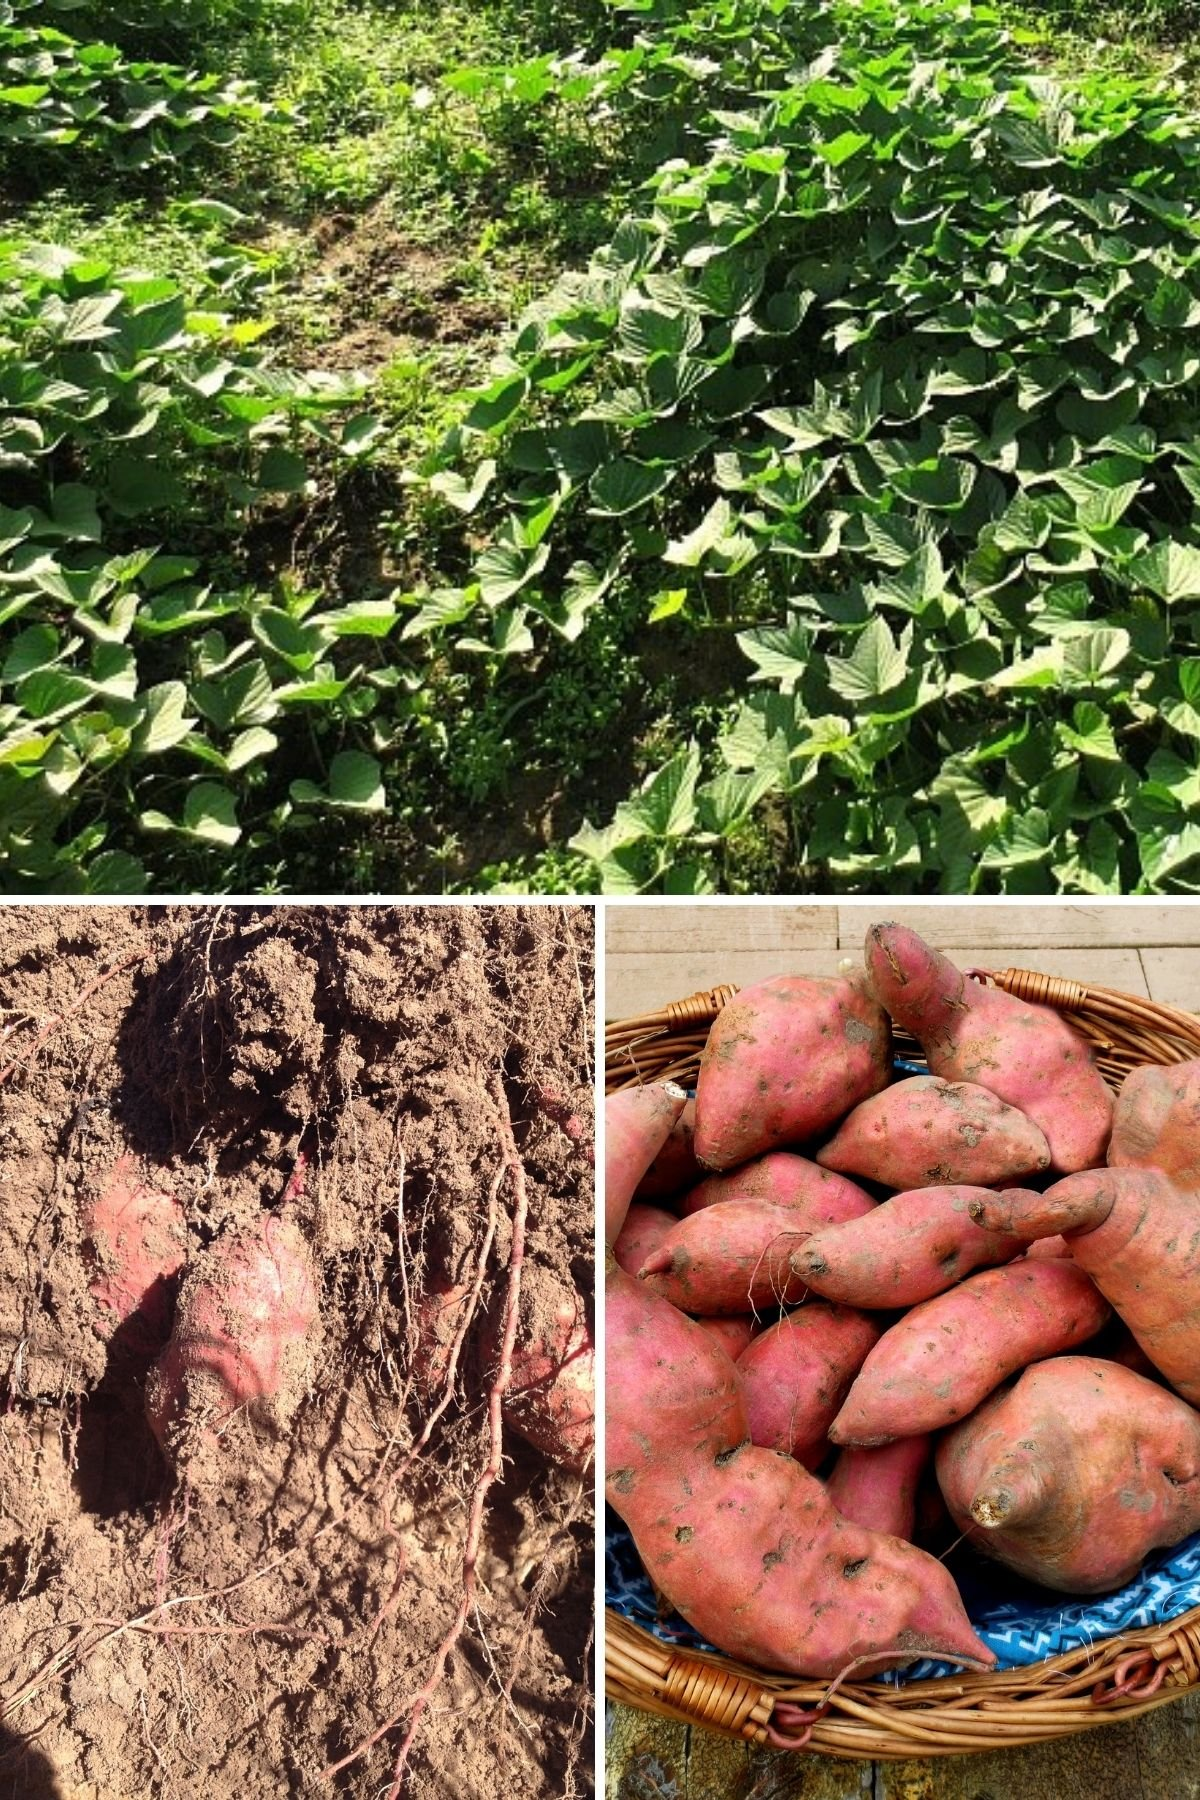 how to harvest and store sweet potatoes promo image featured sweet potatoes in the dirt and after curing and even the plants from before the harvest